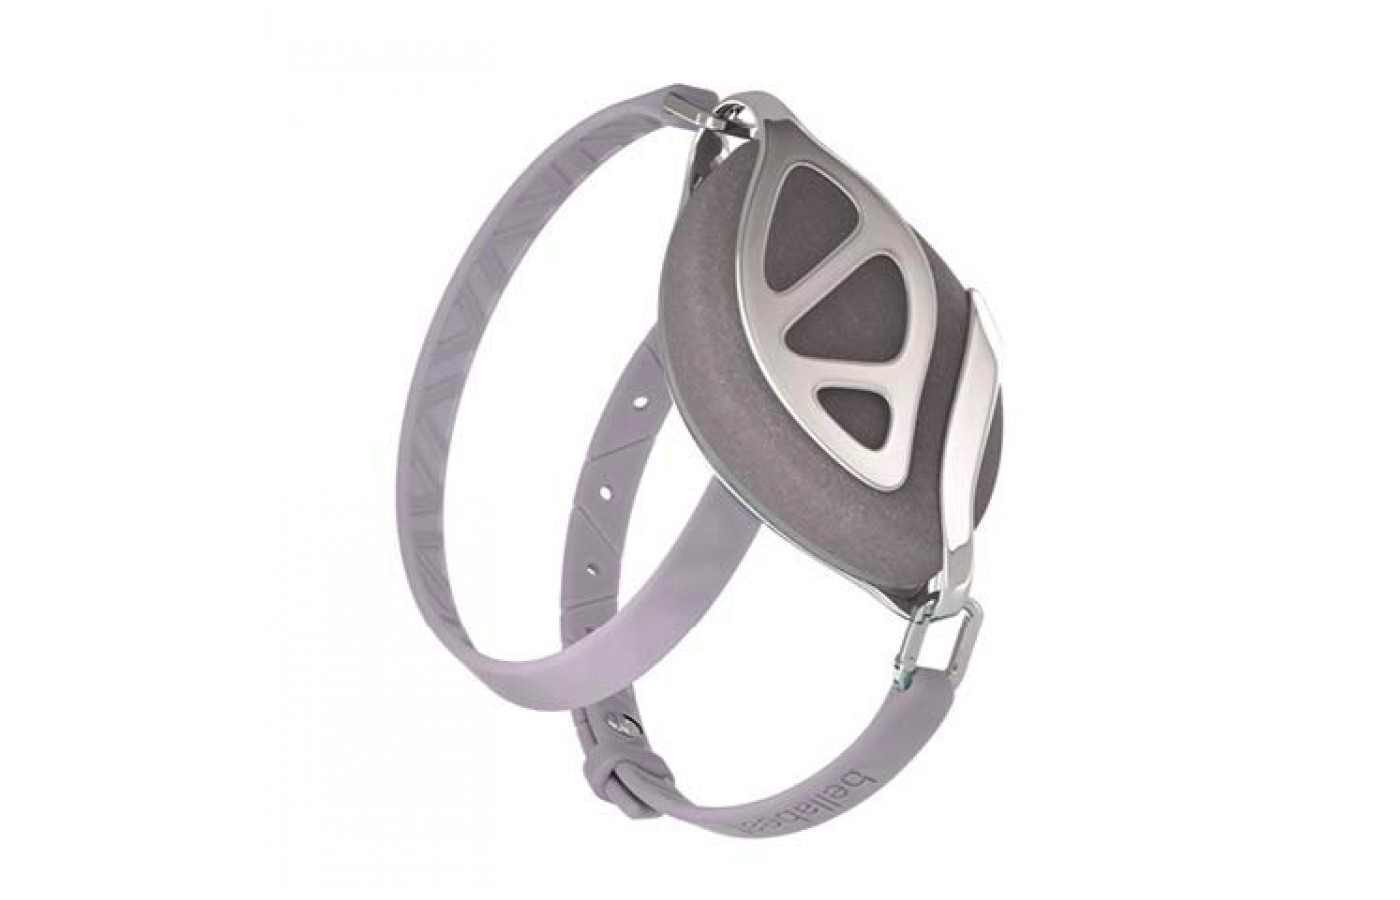 The Bellabeat Leaf can be warn around the wrist, on the neck or clipped onto a shirt for individual preference.